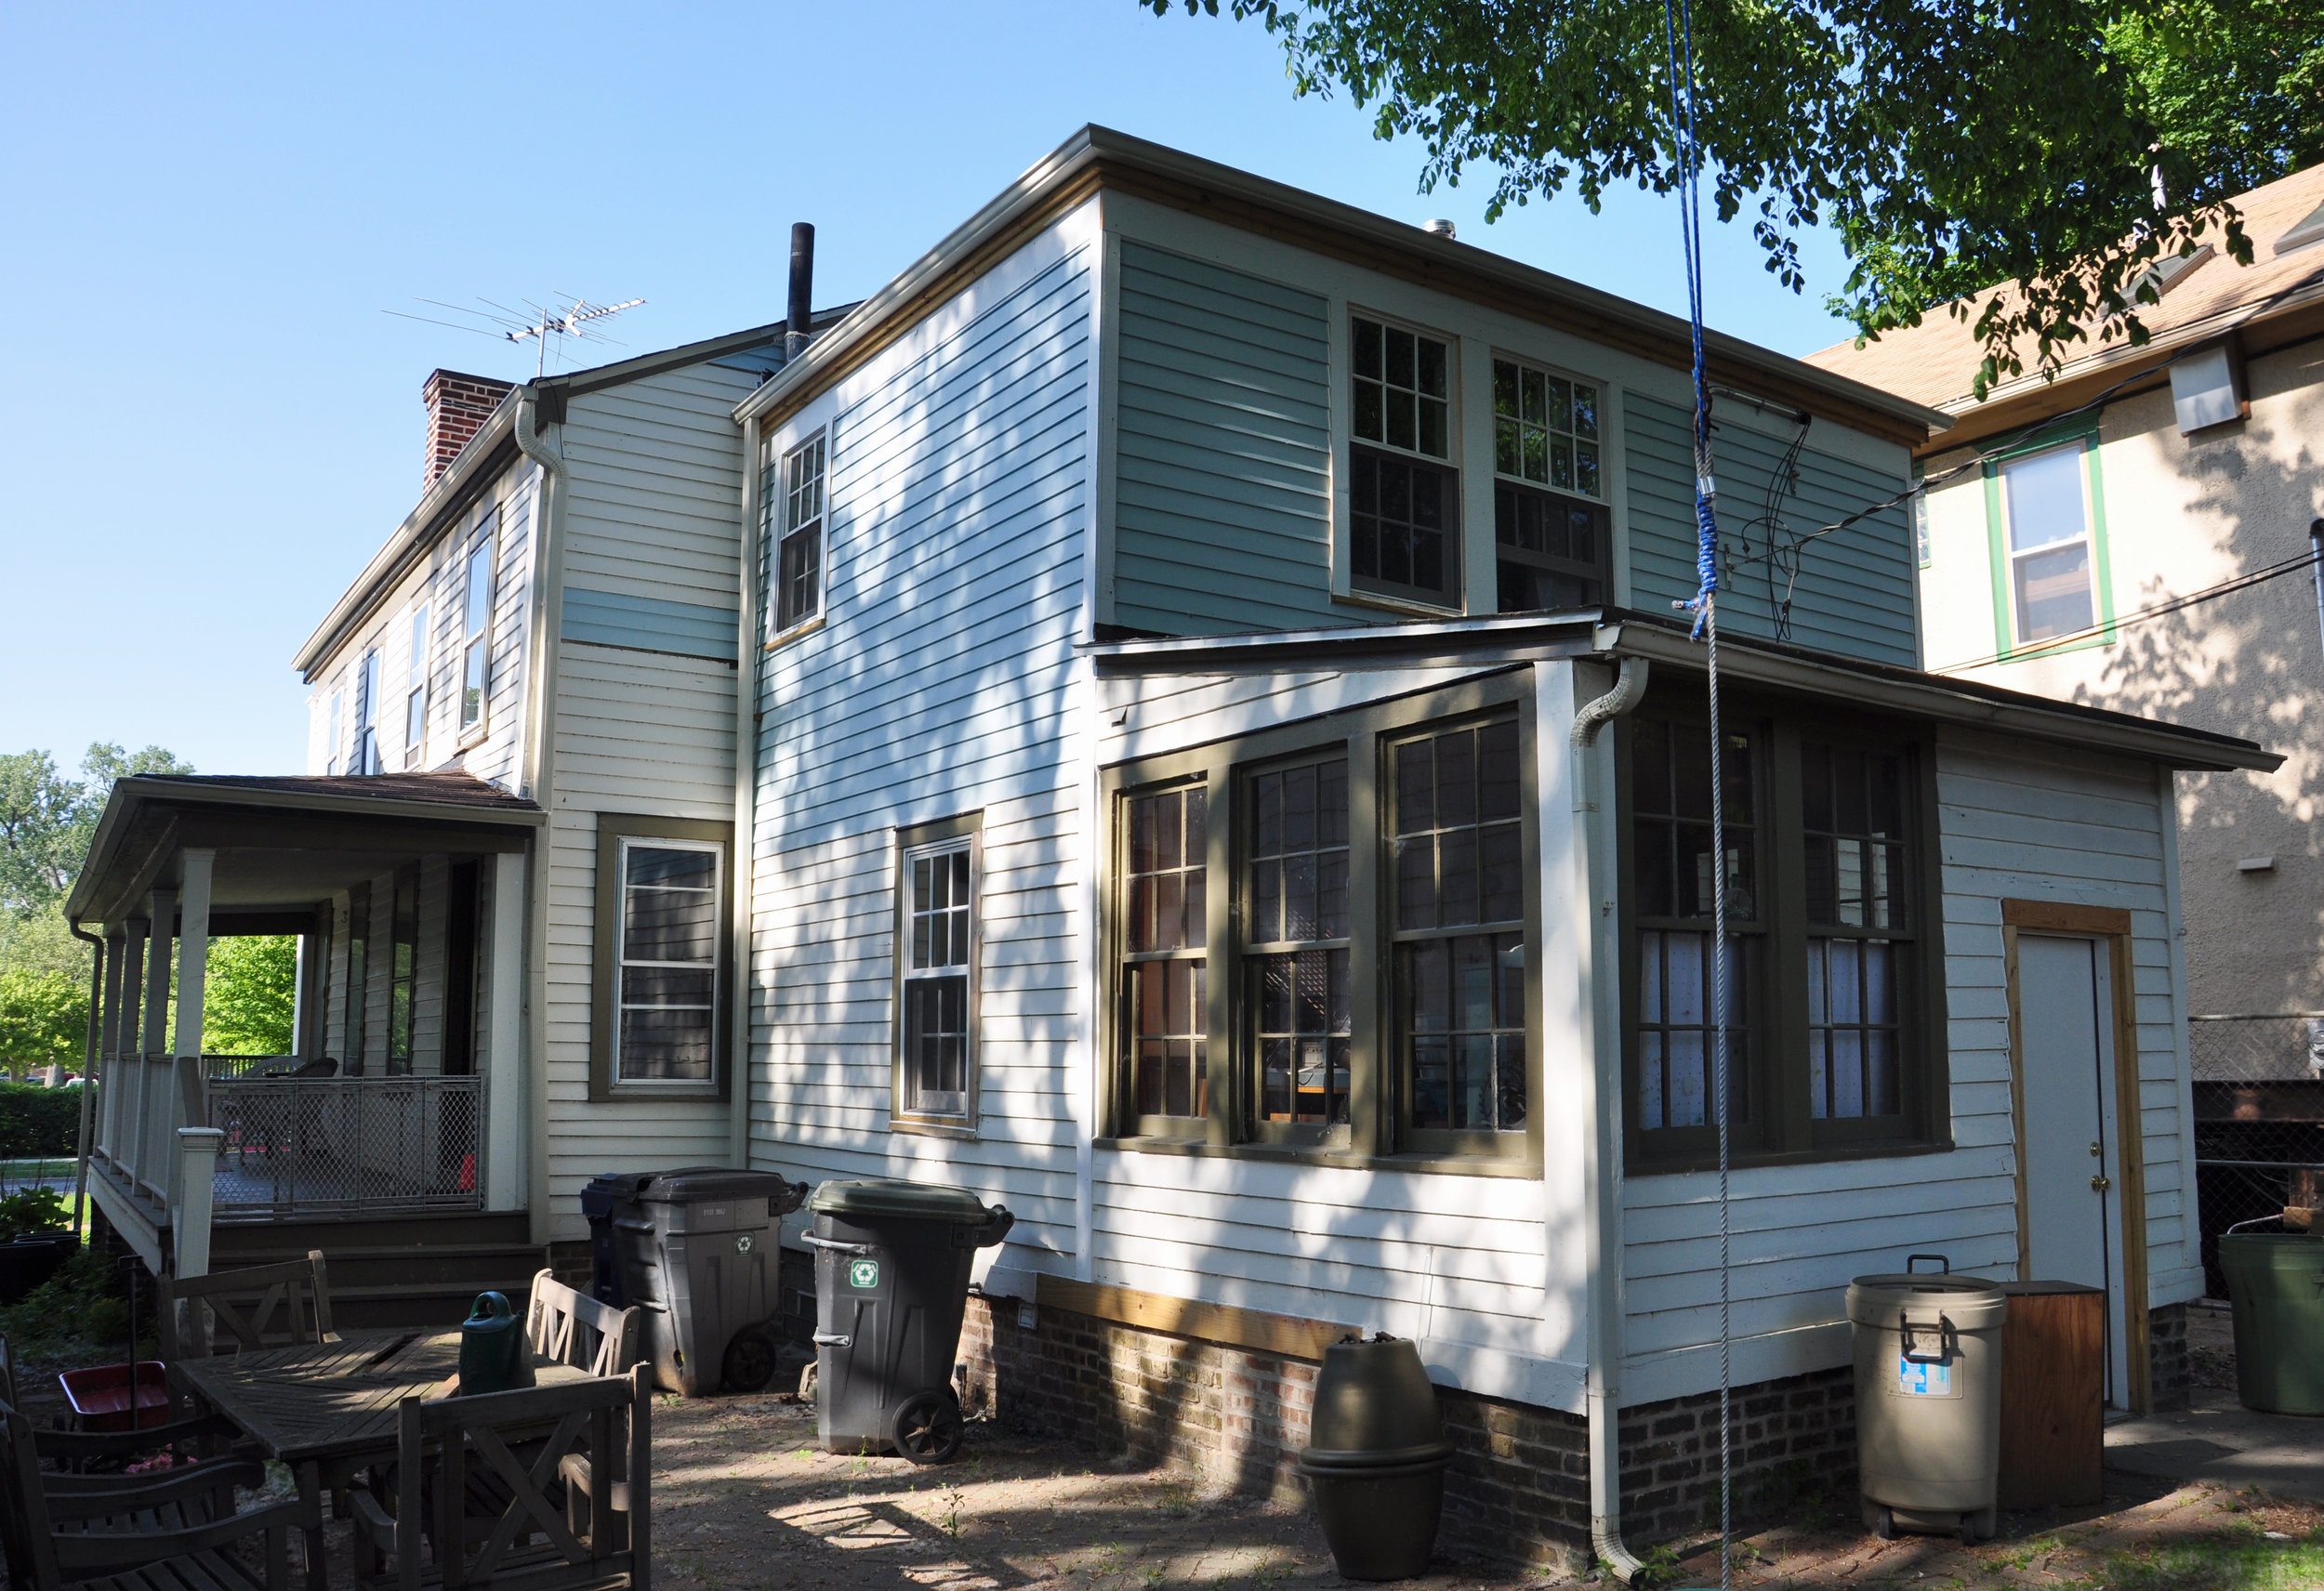 1850s federal-style house, historic preservation, historic landmark, residential renovation, contextual design